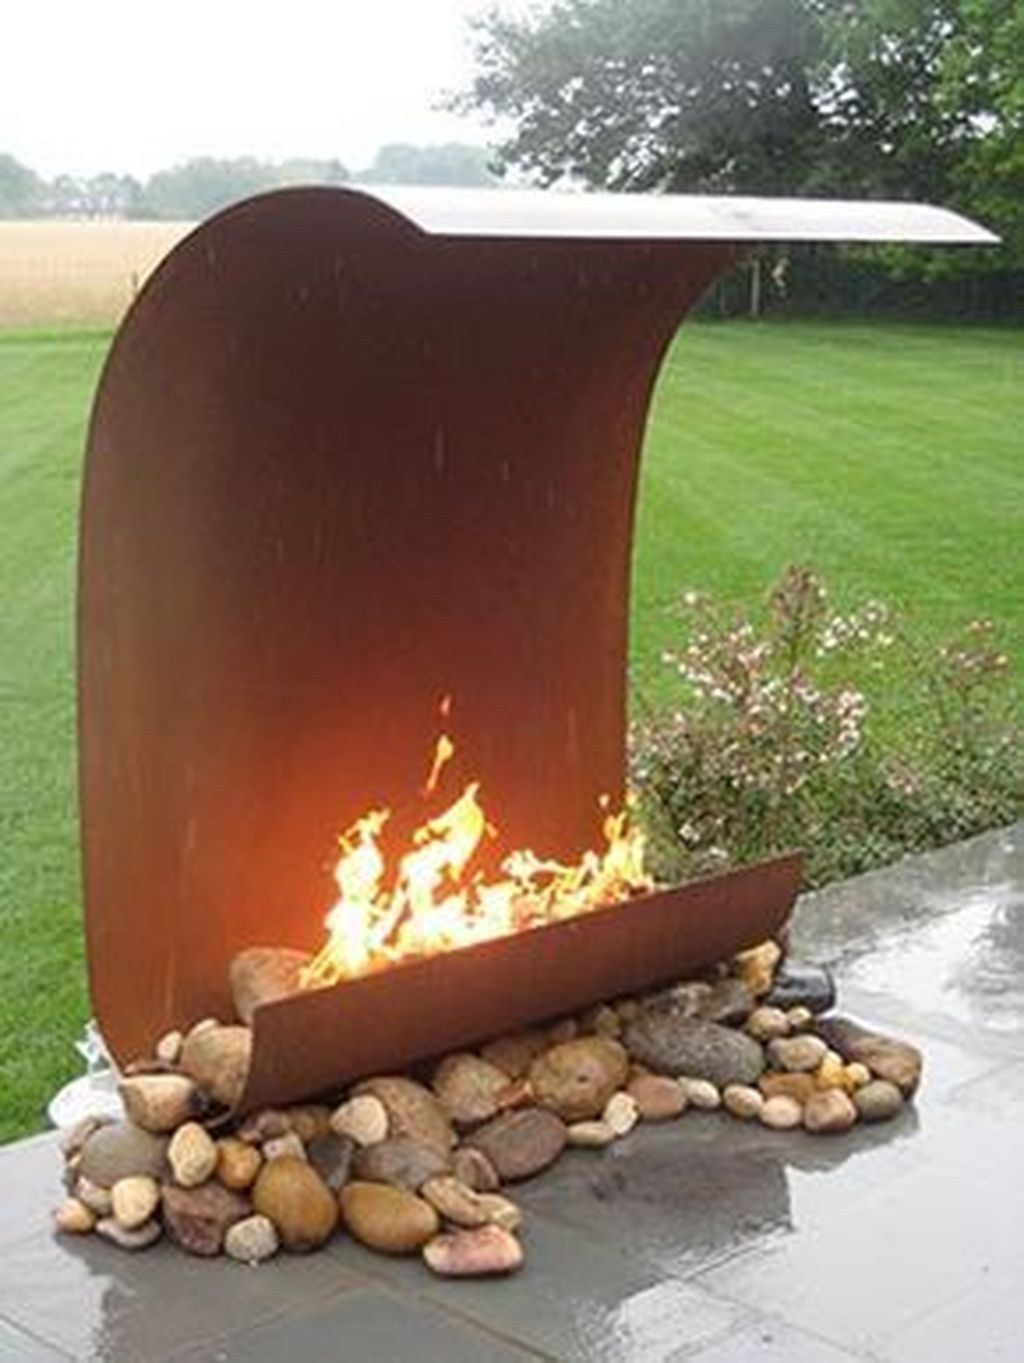 20+ Inspiring Outdoor Firepit Ideas #diyfirepit Inspiring Outdoor Firepit Ideas 11 a fashionable example of a style pinsight from a chicc minded pinner #landscapelightingdesign